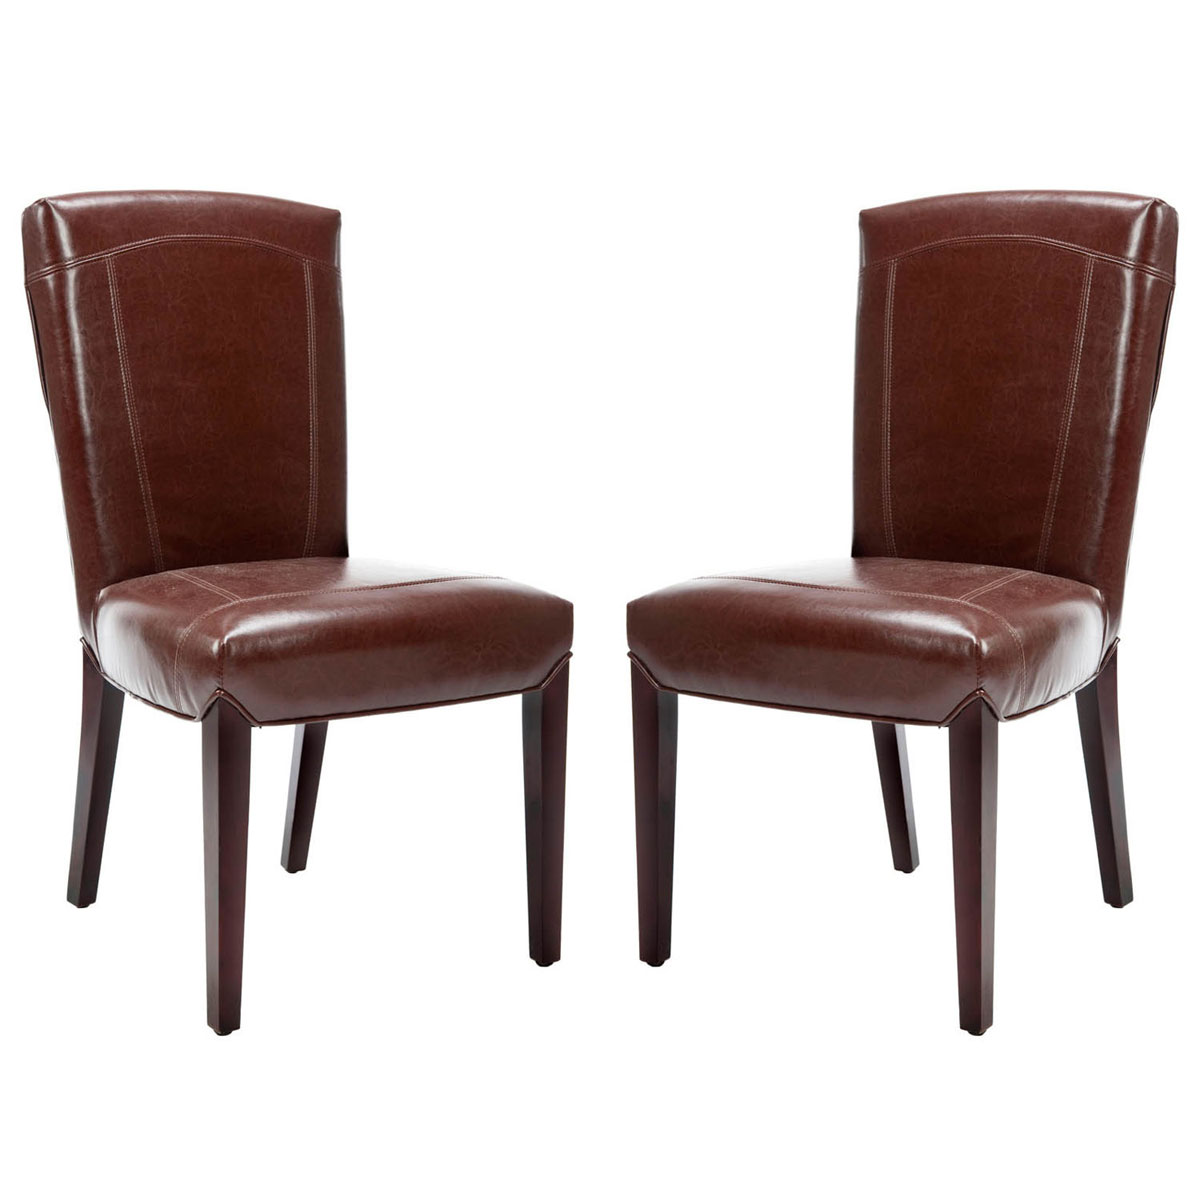 safavieh dining chairs how to reupholster kitchen hud8200a set2 furniture by